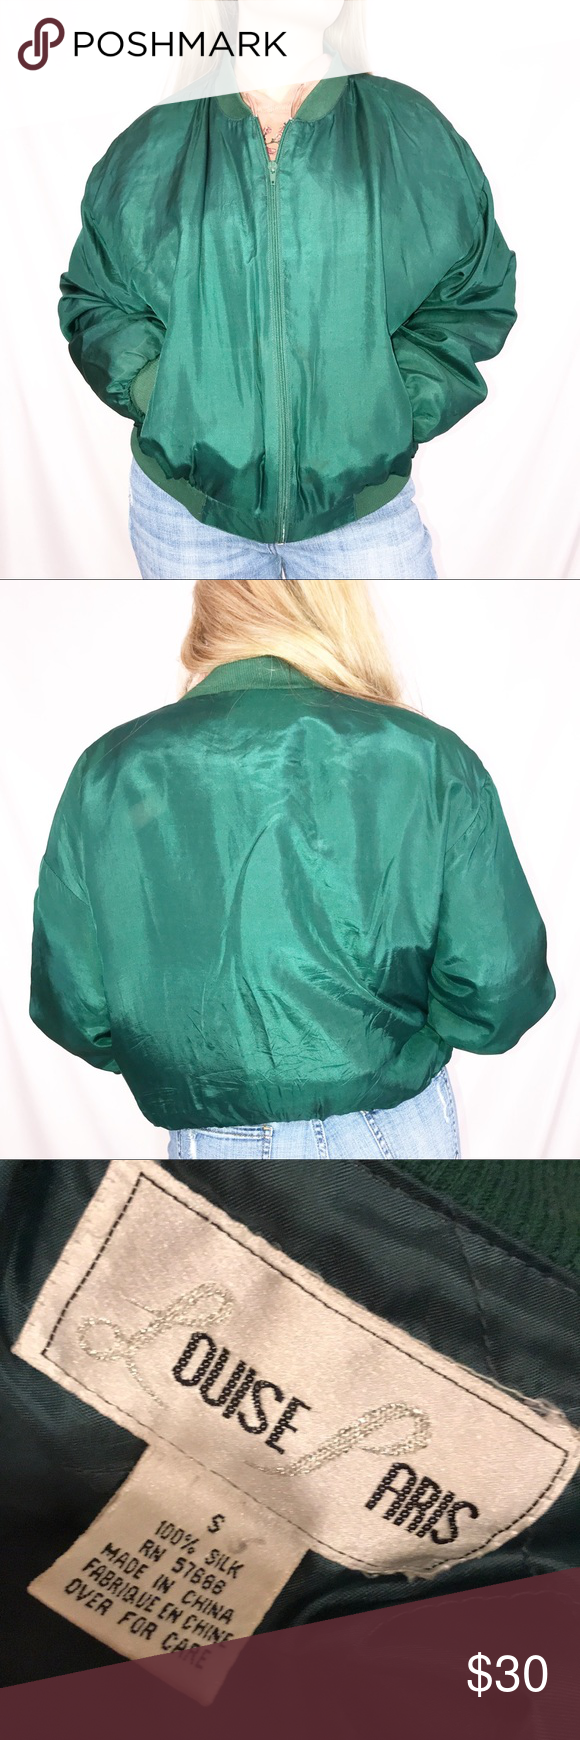 vintage 100 silk bomber jacket small in great condition model is